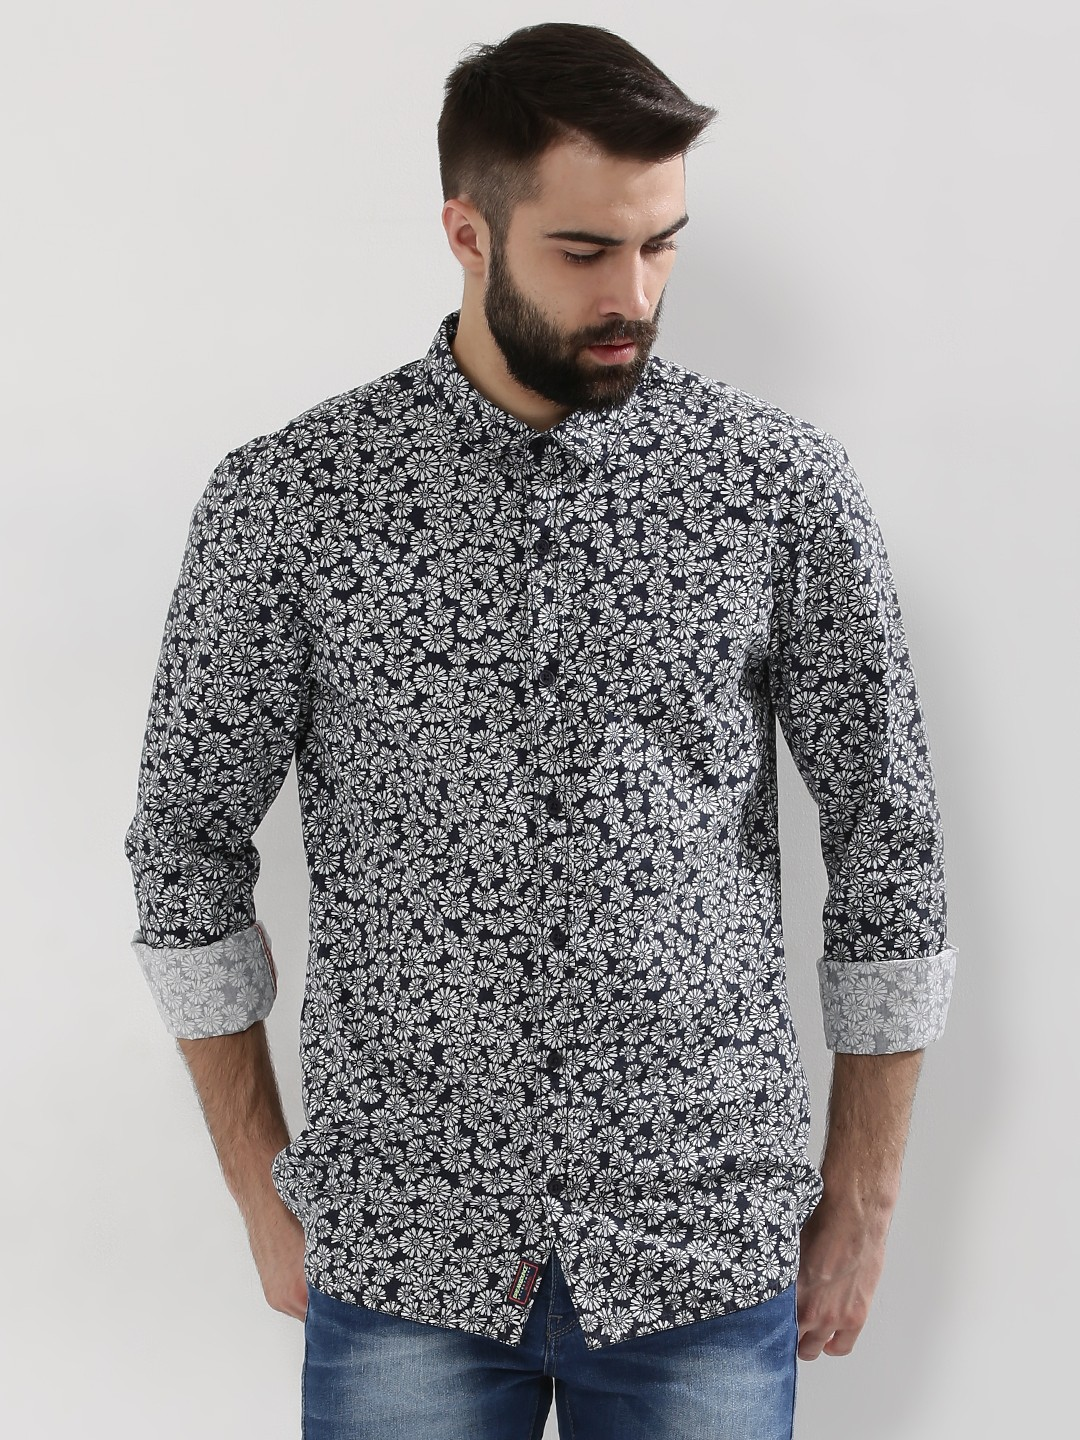 Buy Breakbounce Curved Hem Printed Shirt For Men Men 39 S